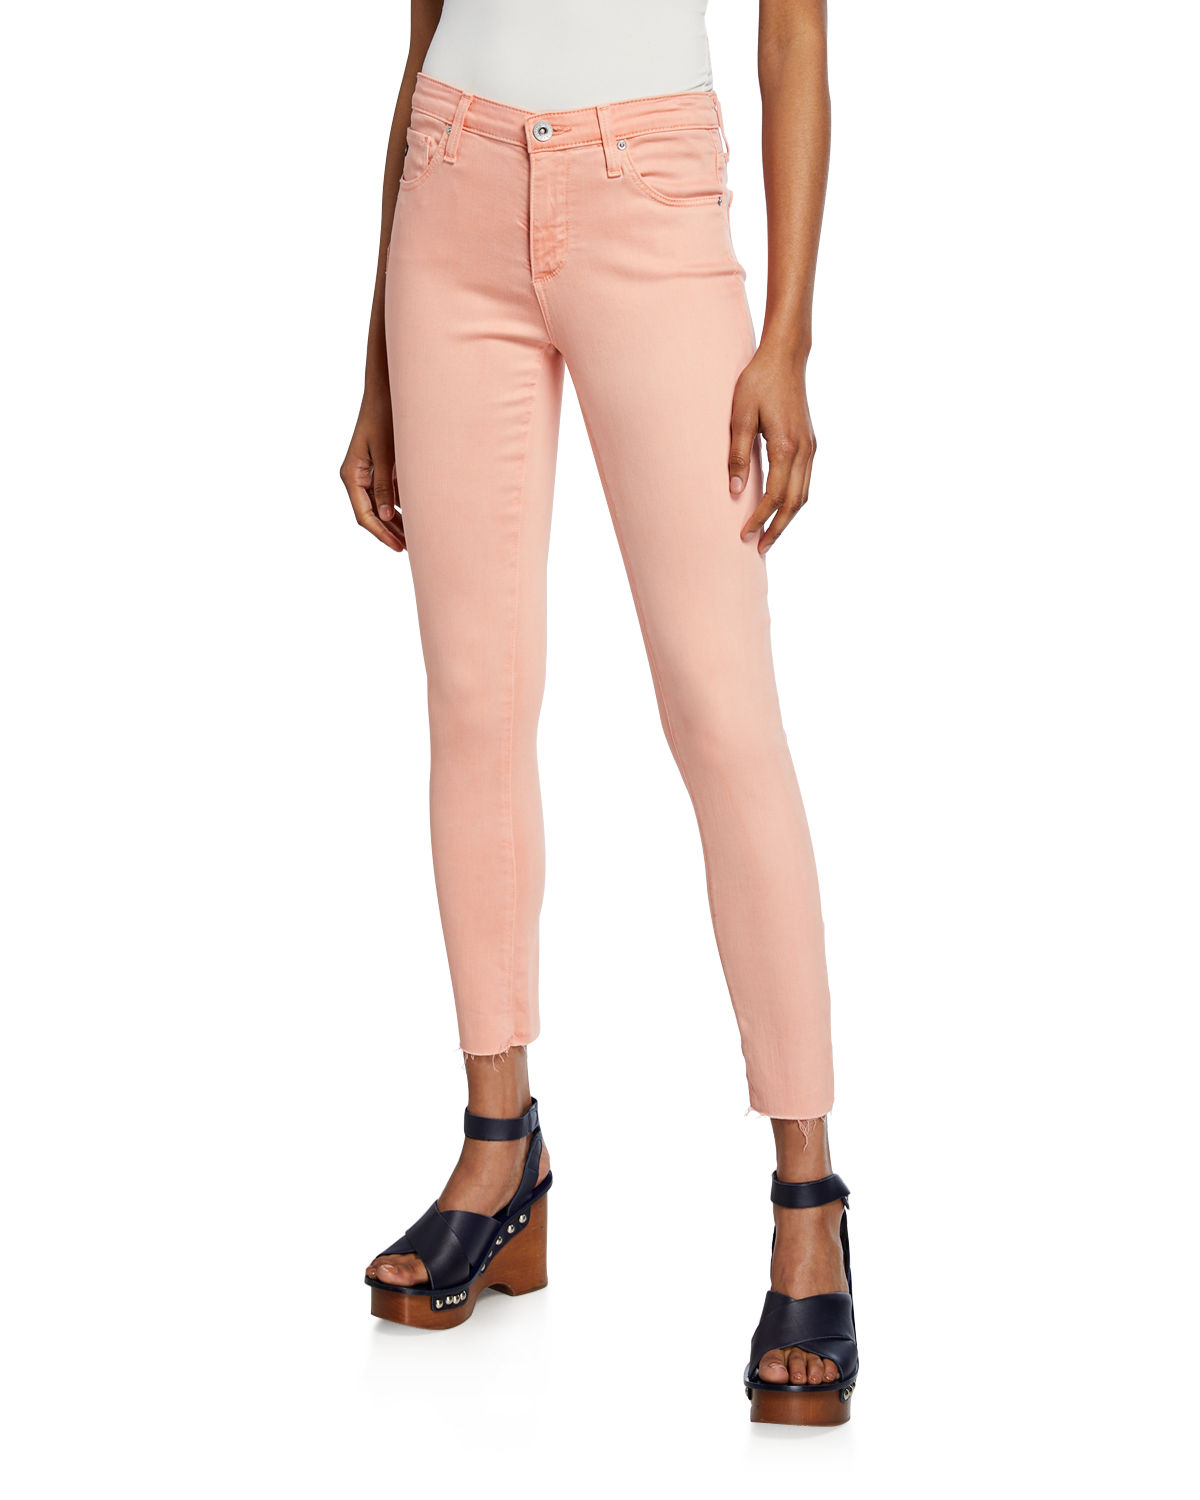 Ag Jeans THE LEGGING ANKLE CROPPED SKINNY JEANS